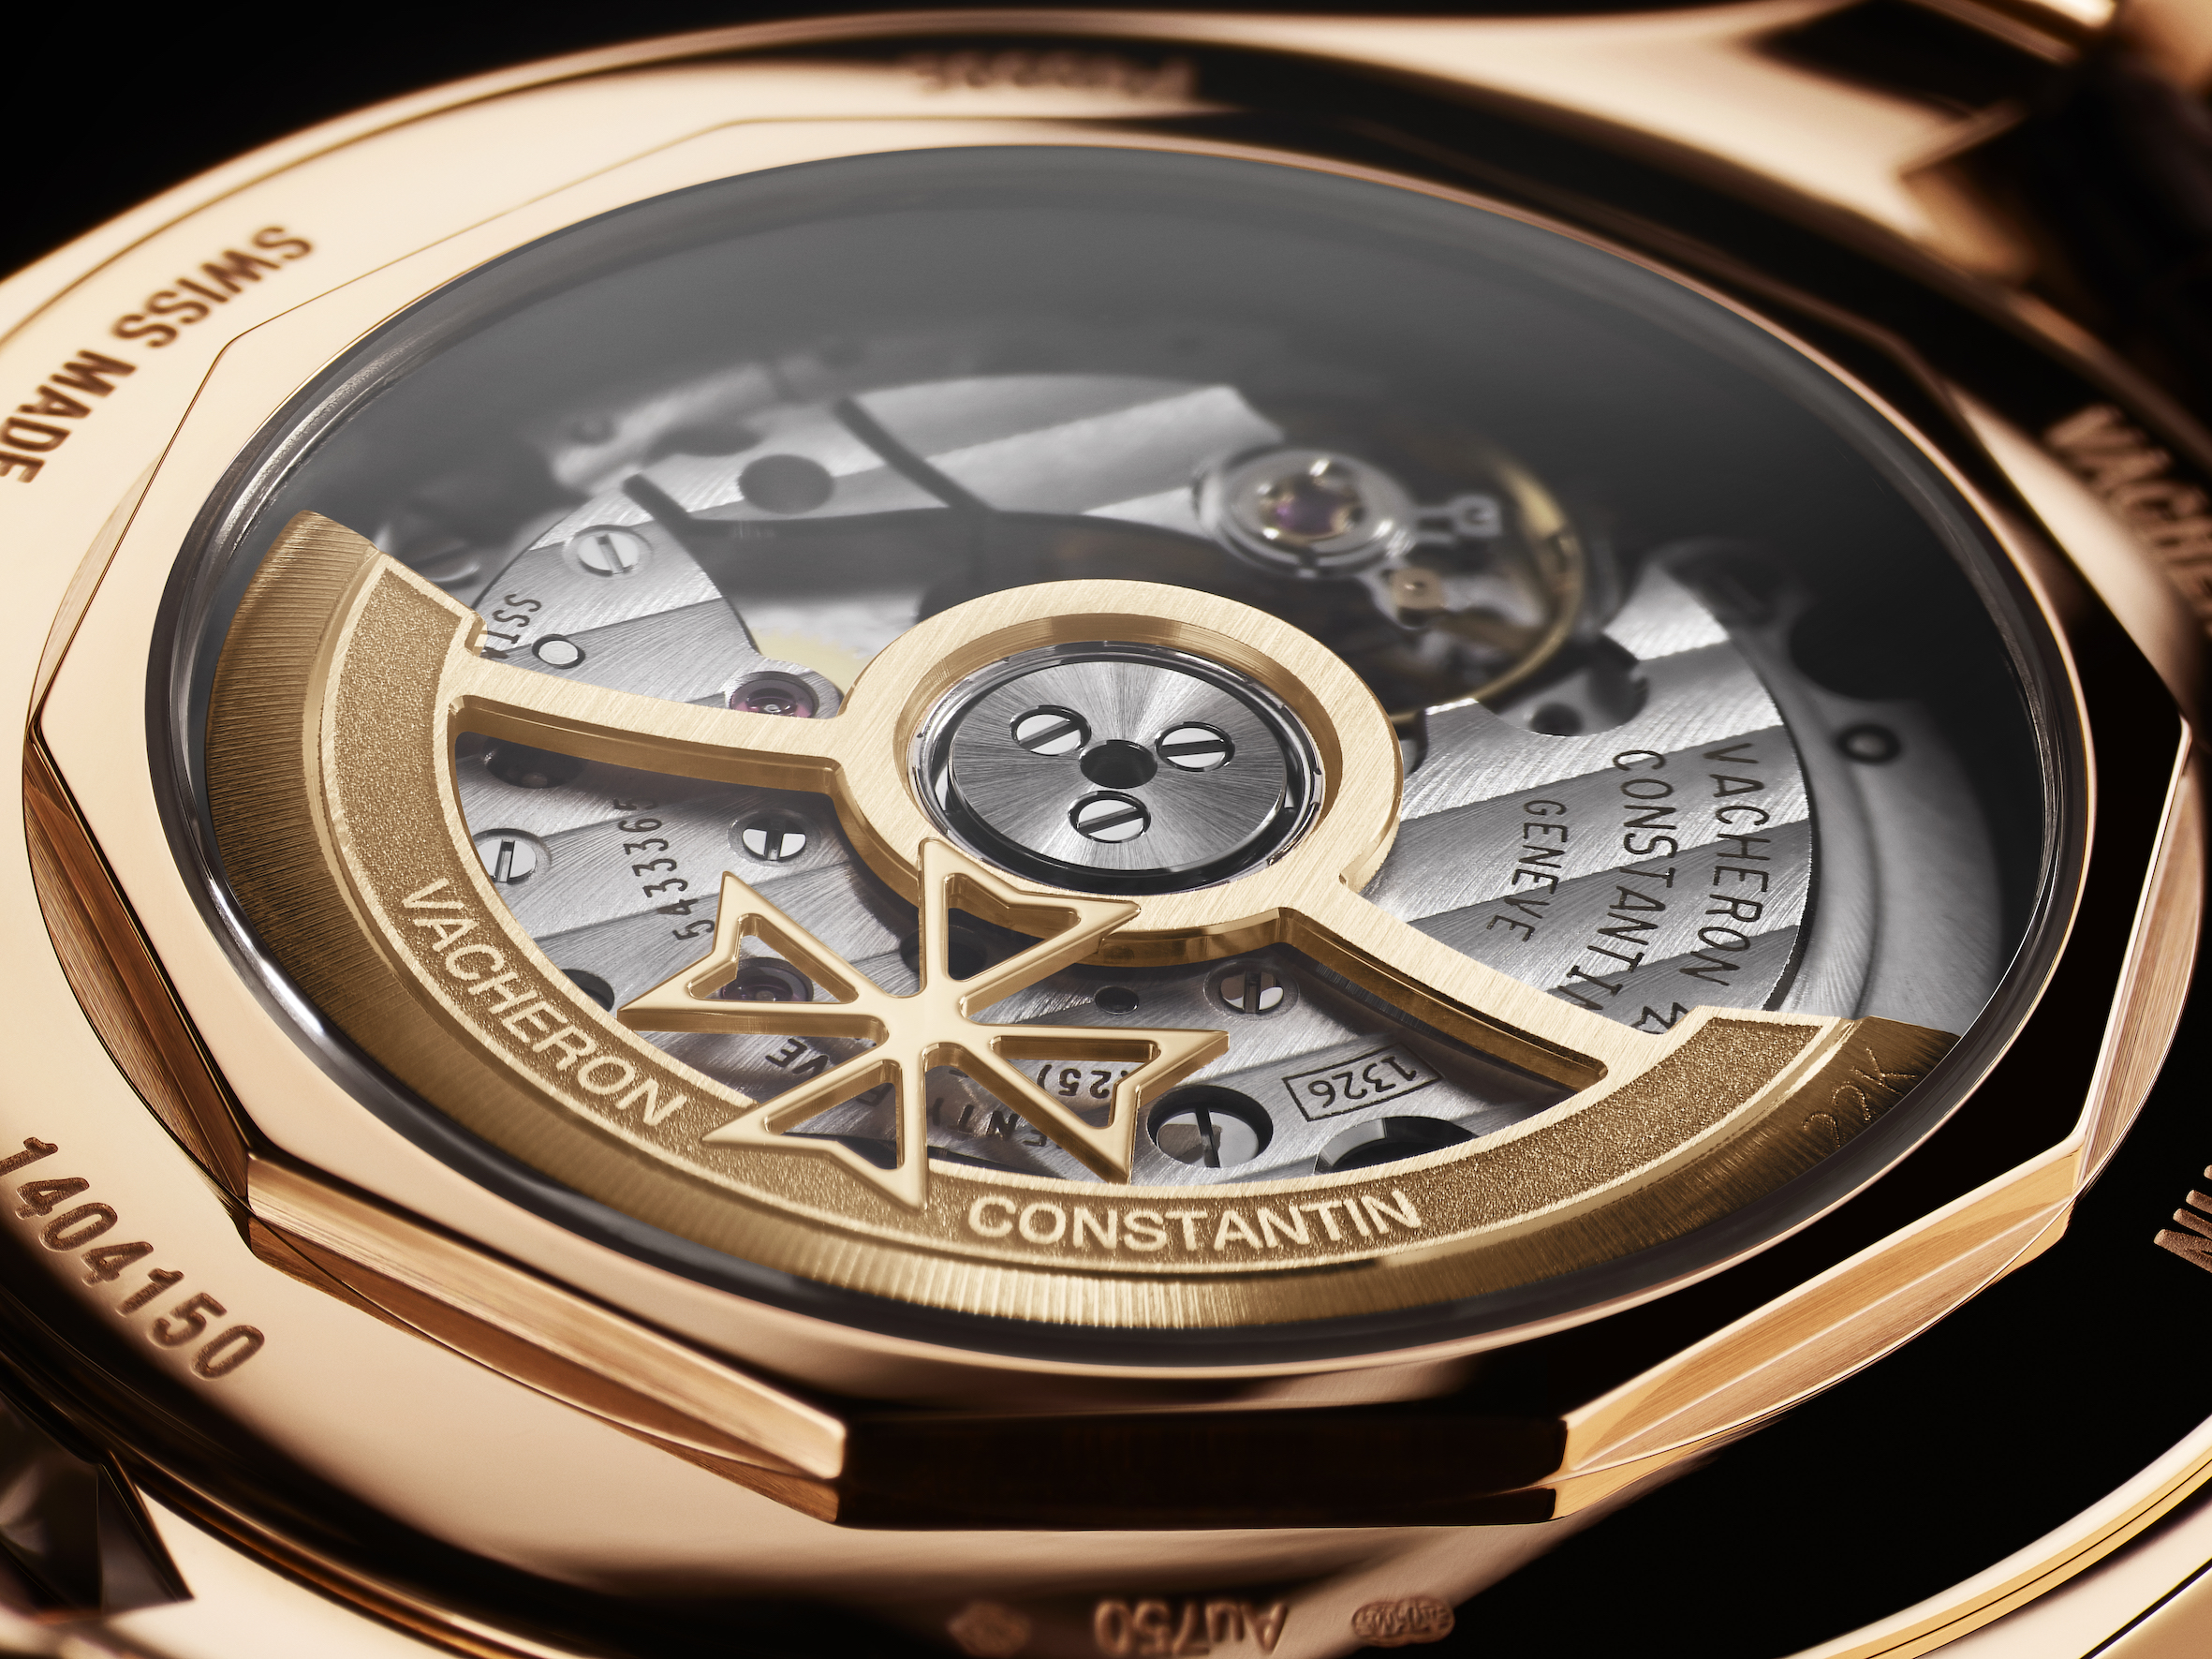 Vacheron Constantin FIFTYSIX self-winding. The 40 mm-diameter steel or 18 carats 5N pink gold case of this model houses a brand-new mechanical self-winding movement, Calibre 1326, endowed with a 48-hour power reserve. Featuring the 22 carats openworked Maltese cross-shaped oscillating weight, this watch displaying the hours, minutes, central seconds indication is equipped with a stop-seconds device.